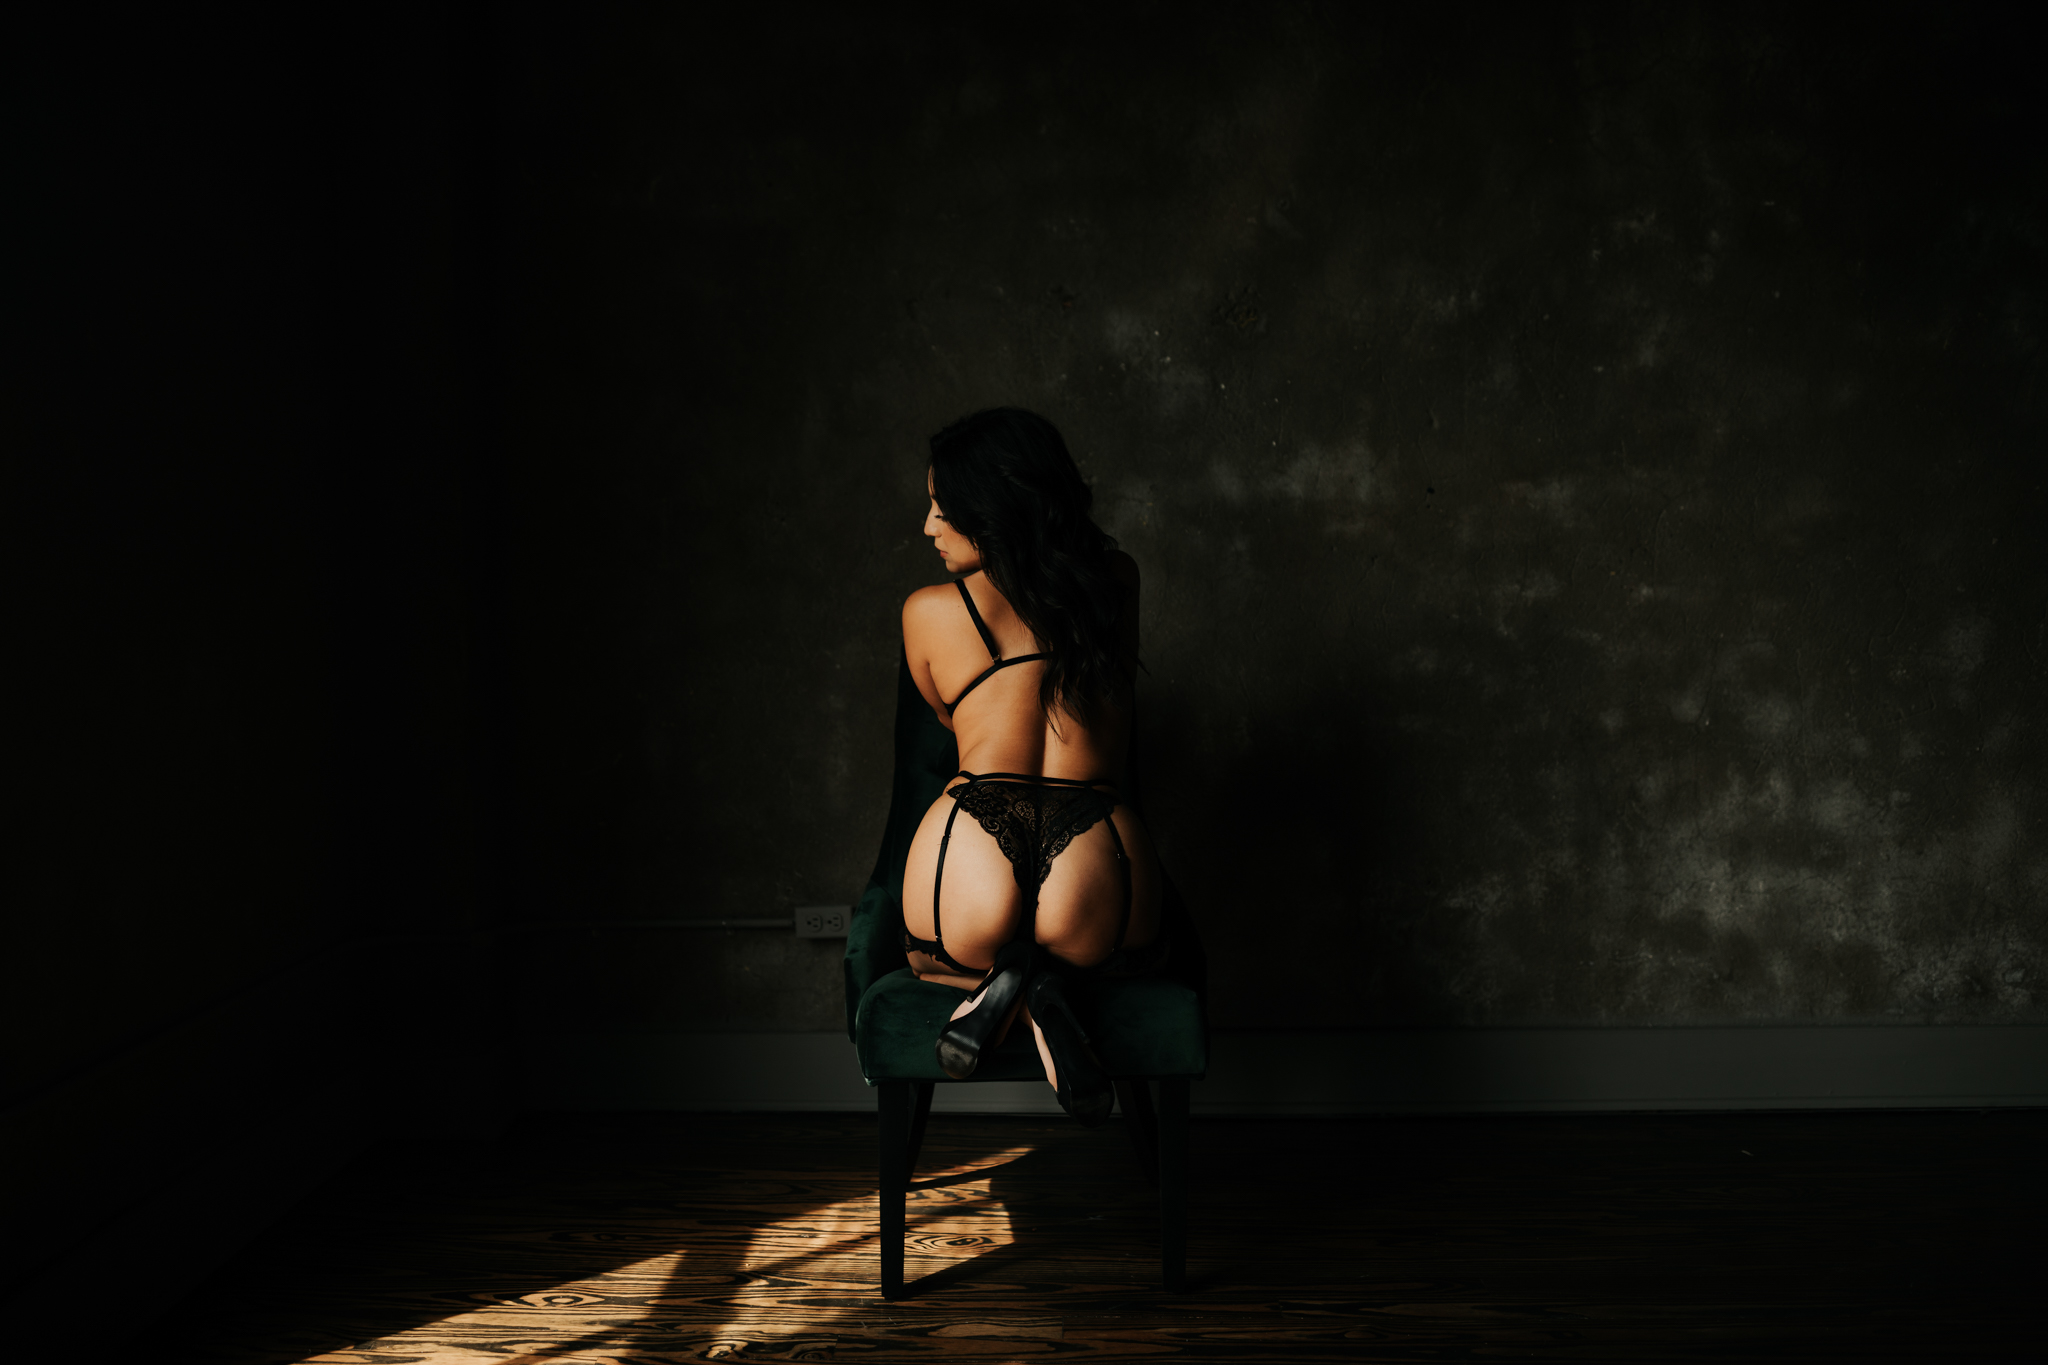 Houston Boudoir Photographer-The Negative Space-Moody Boudoir Session- Houston Wedding Photographer -Kristen Giles Photography-1.jpg